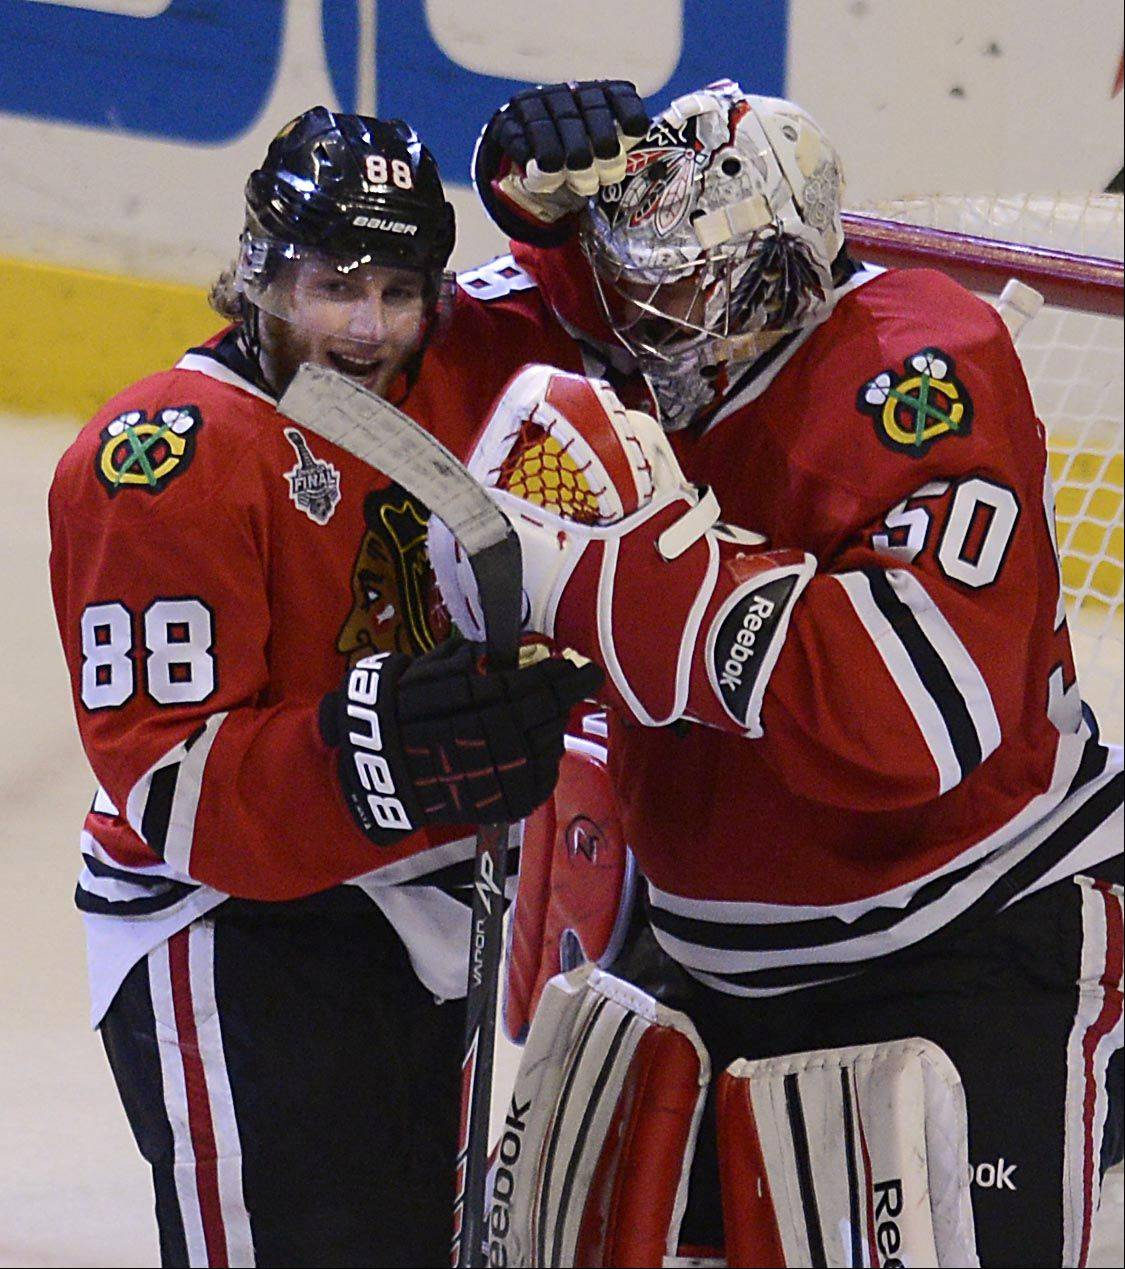 Chicago Blackhawks right wing Patrick Kane and goalie Corey Crawford congratulate each other after the 3-1 win over the Boston Bruins Saturday in Game 5 of the Stanley Cup Finals at the United Center in Chicago.